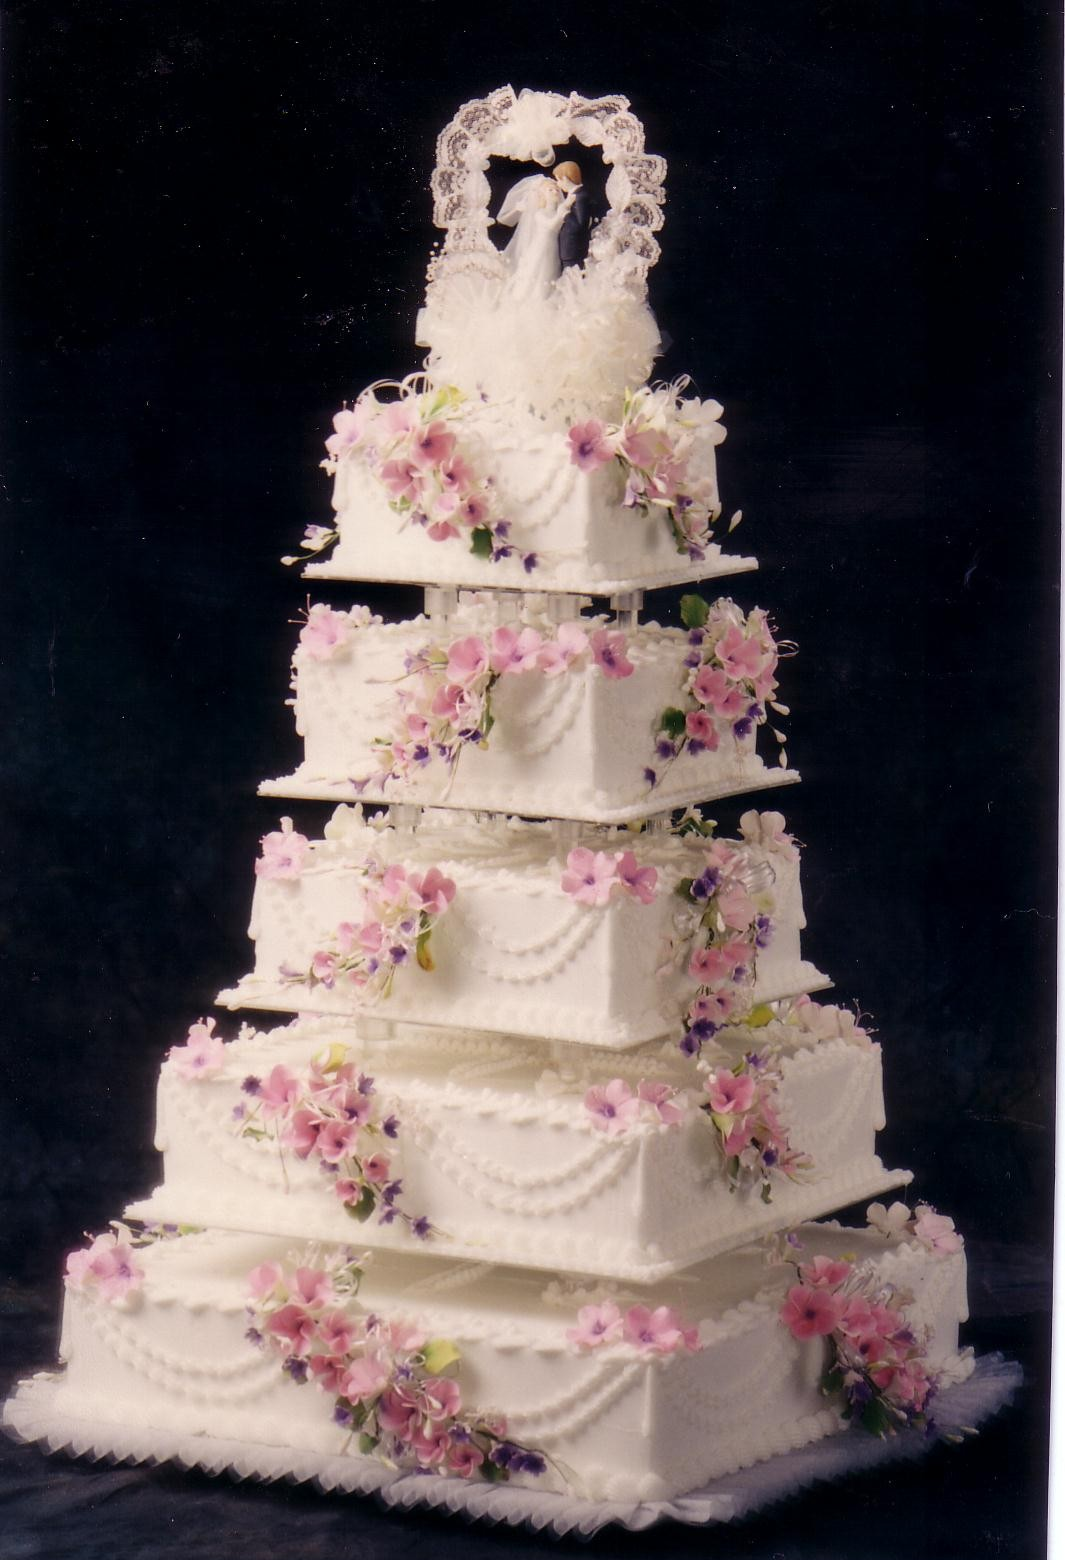 Cake place 5 tier white square wedding cake with pink flowers 5 tier white square wedding cake with pink flowers mightylinksfo